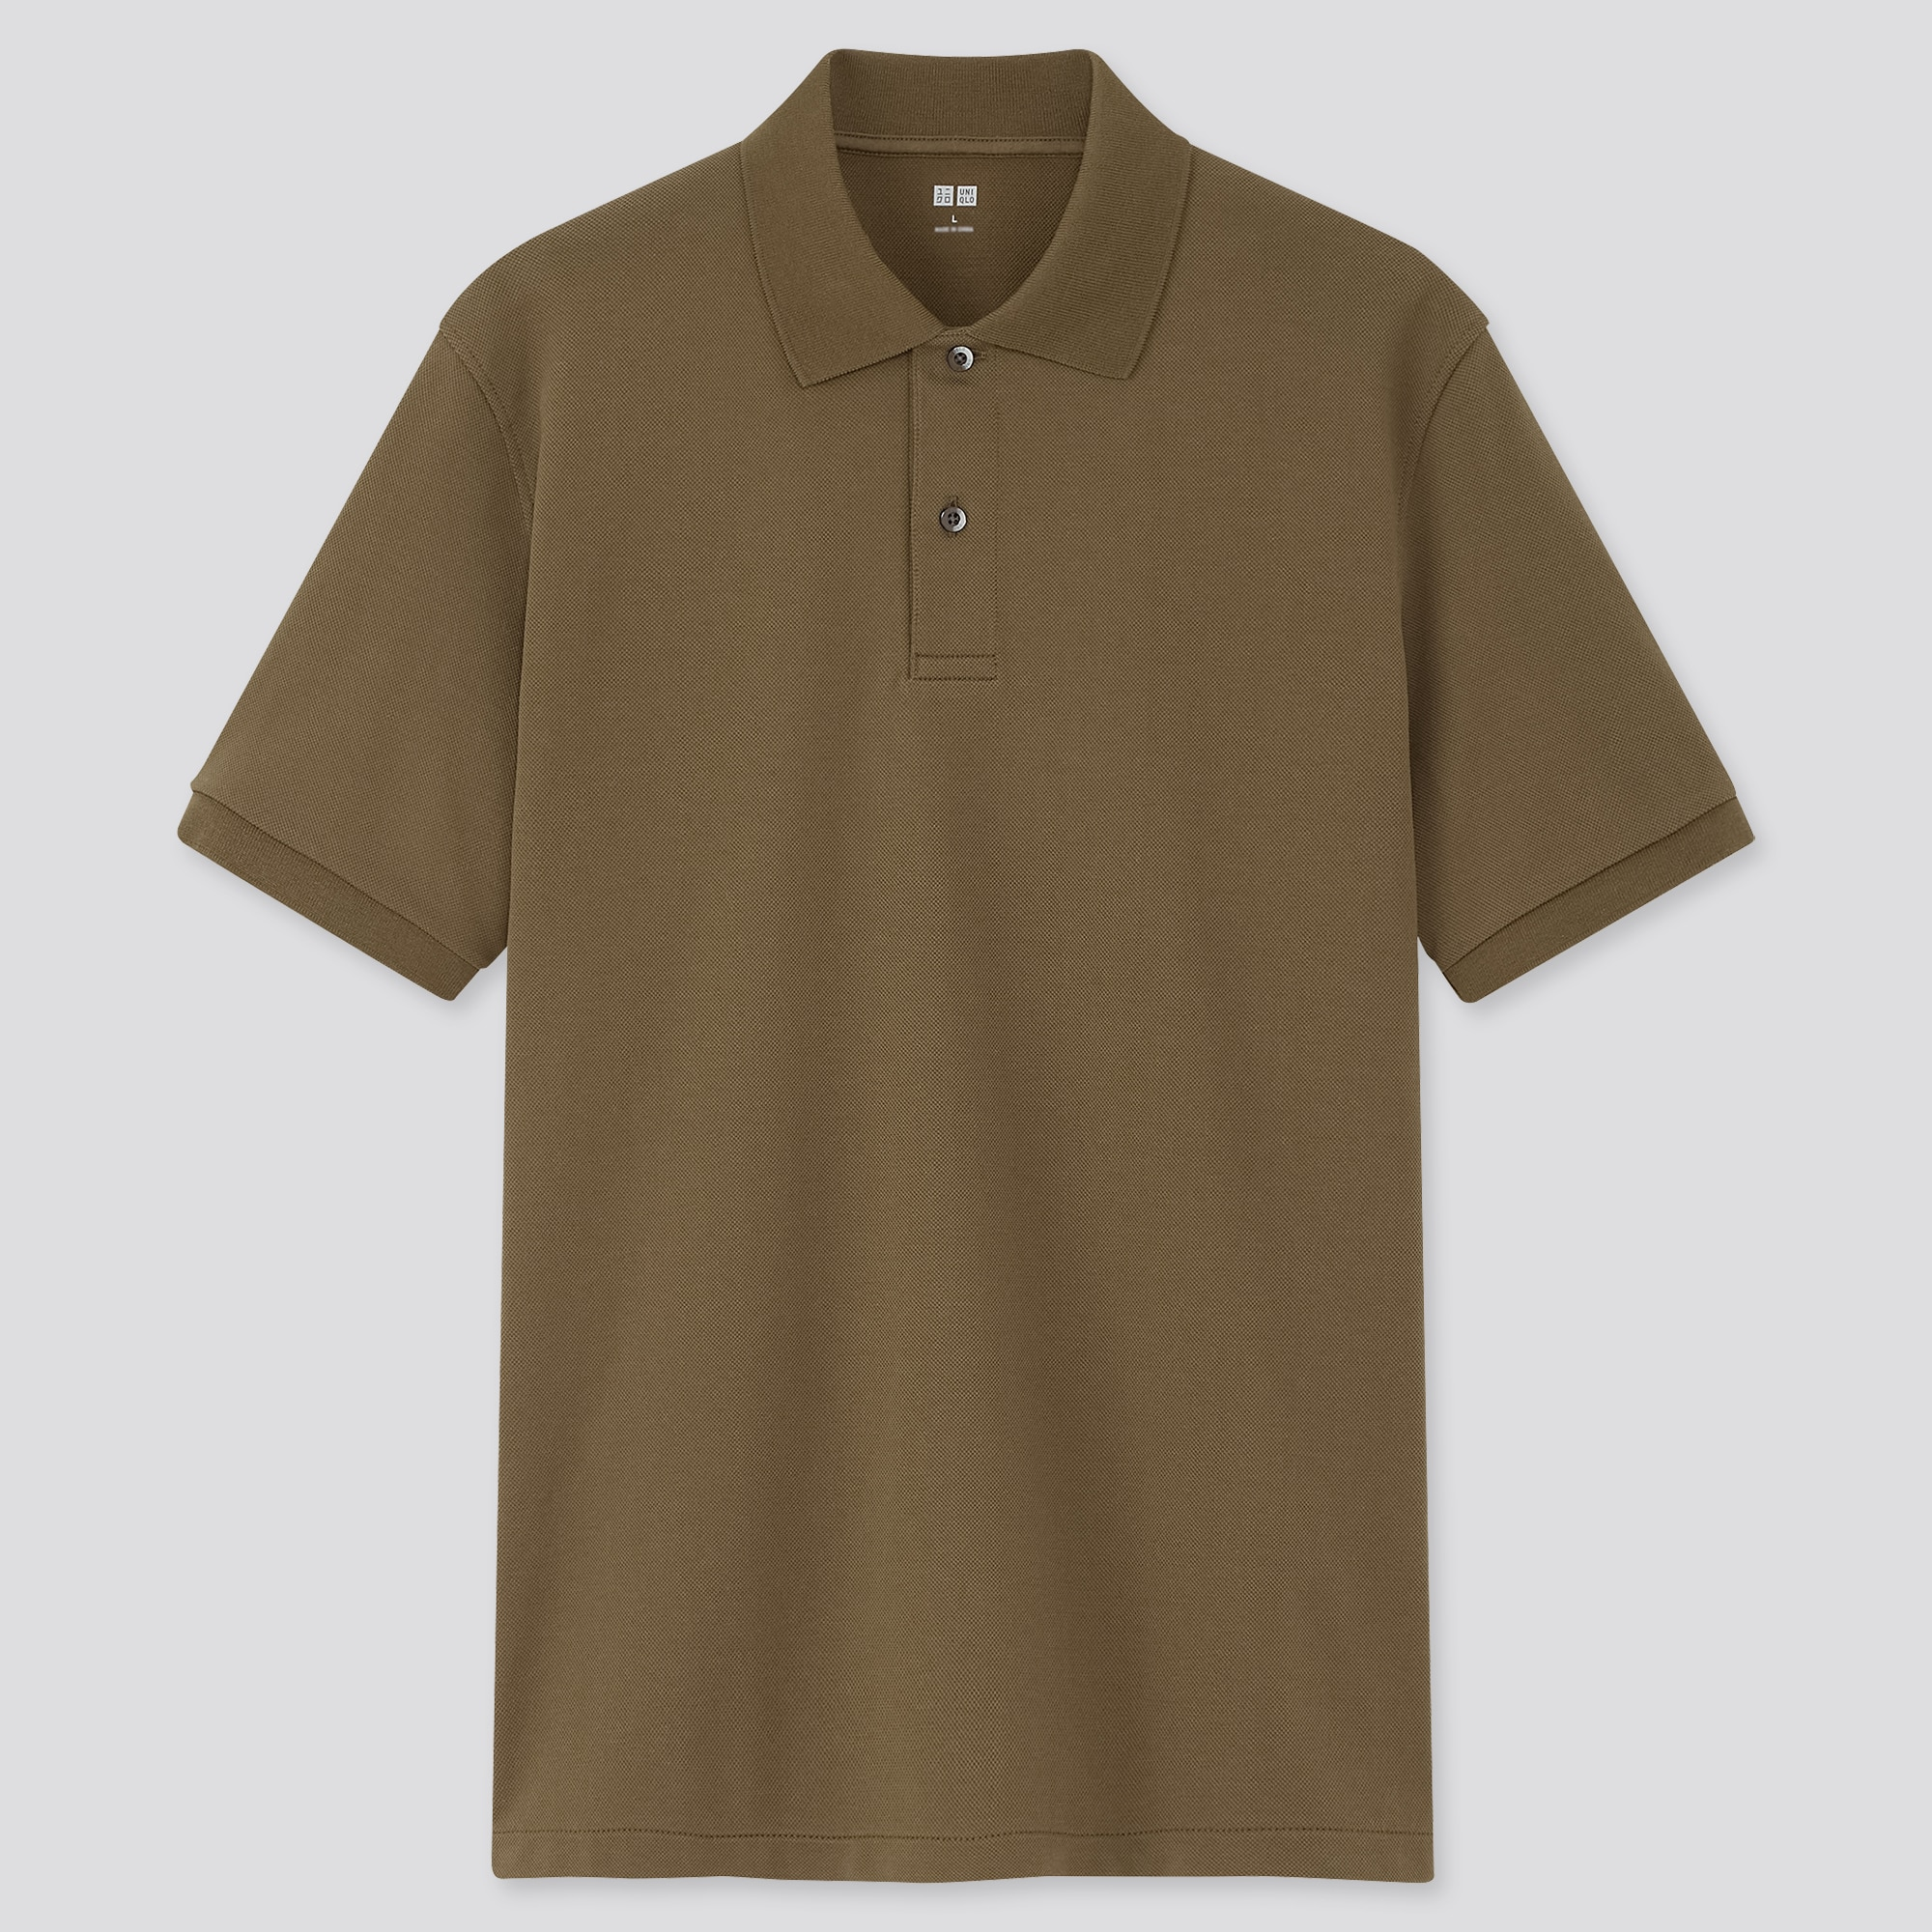 Uniqlo men dry pique short-sleeve polo shirt